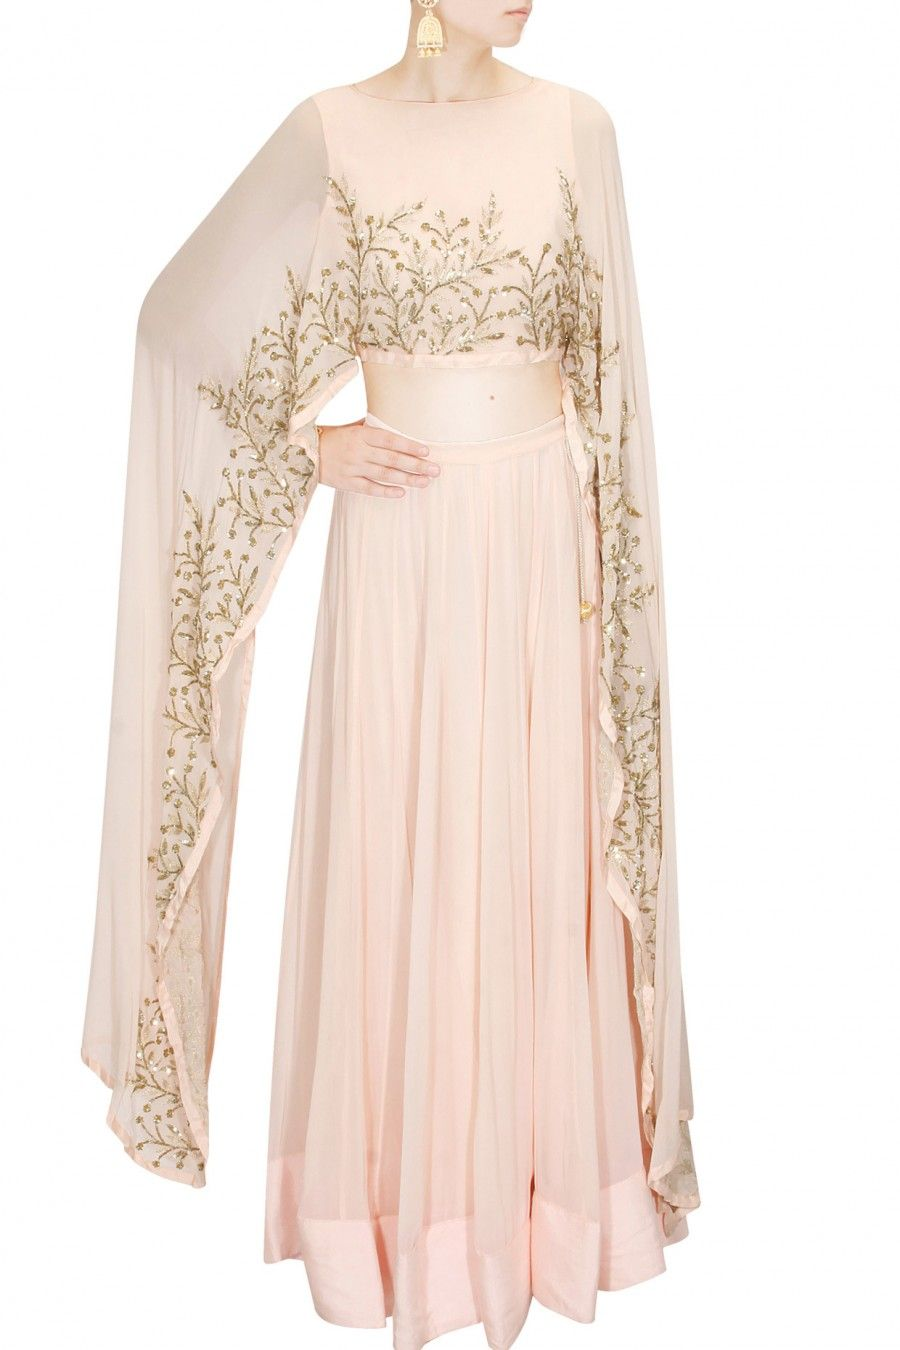 ad7e3fafebb2 PRATHYUSHA GARIMELLA Blush pink embroidered cape lehenga set available only  at Pernia's Pop Up Shop.